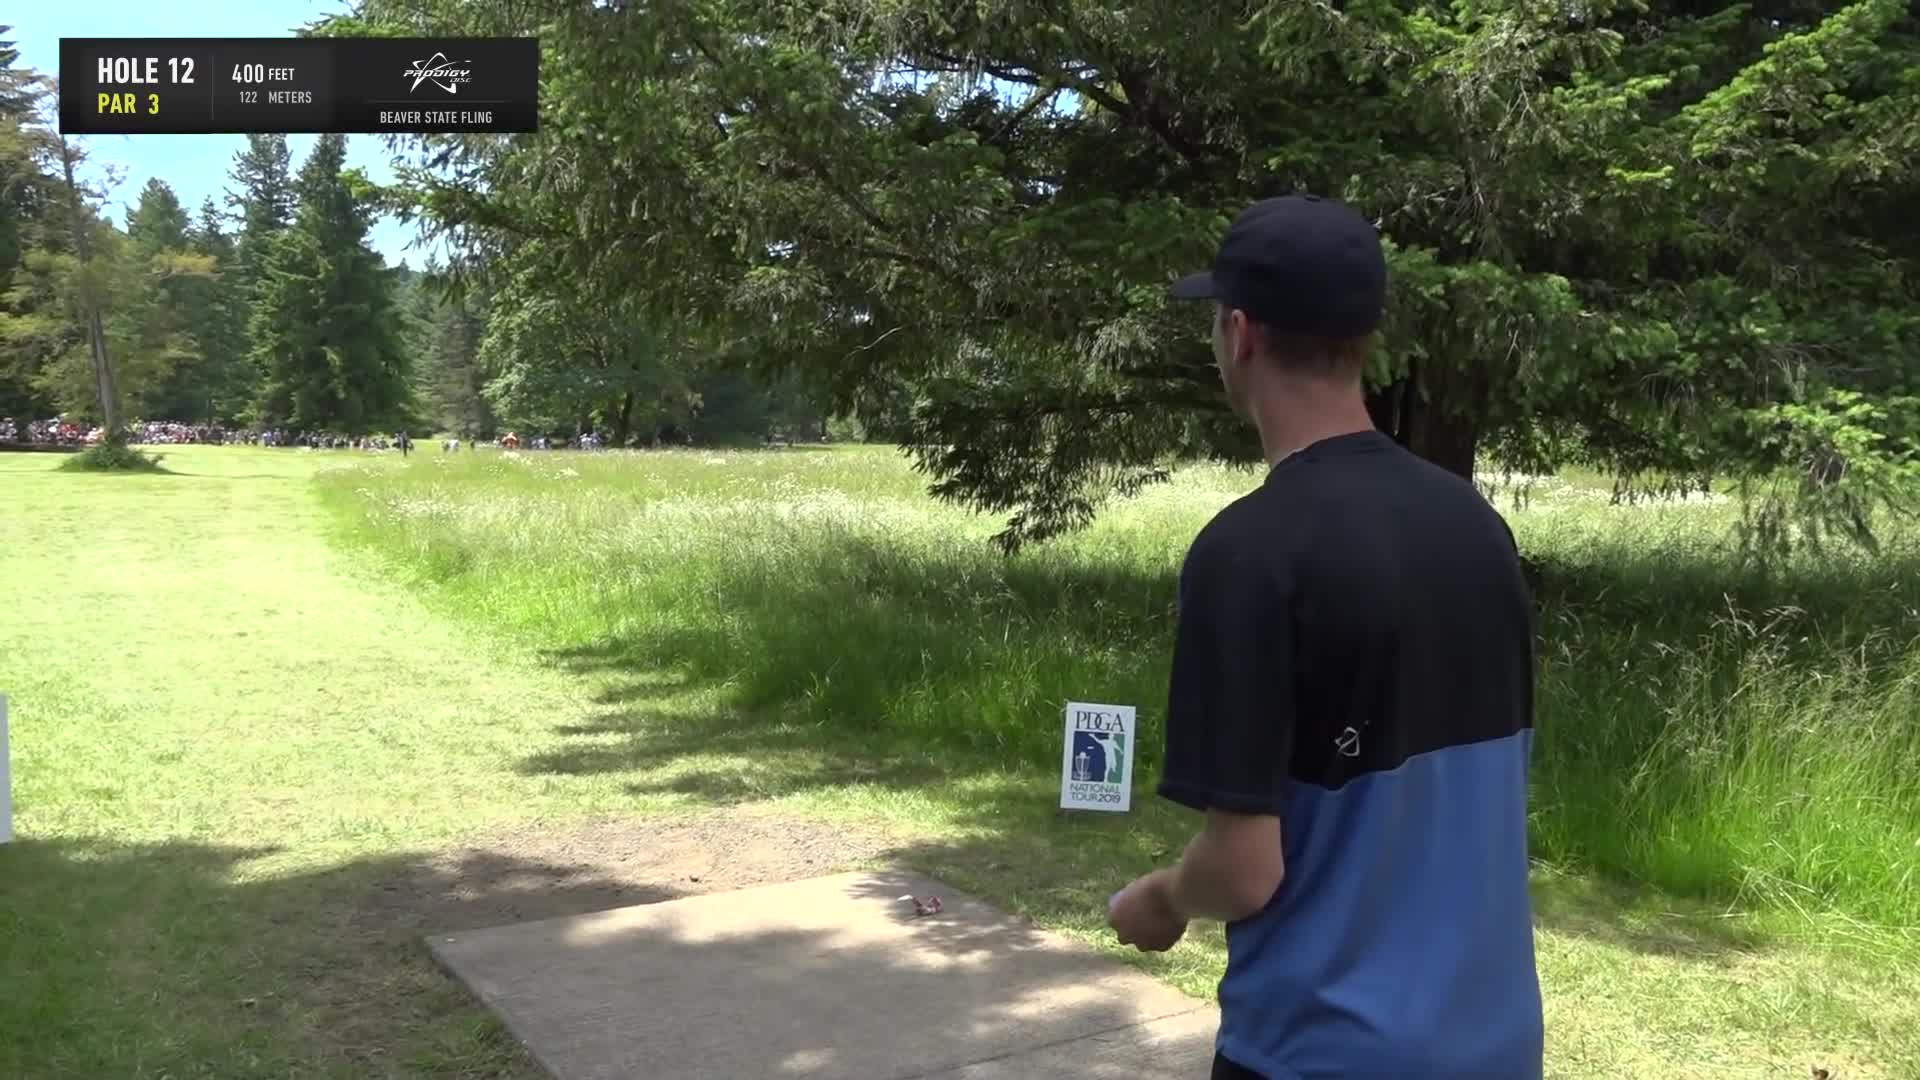 ace, bsf, dela, delaveaga, dgpt, dgwt, disc, disc golf, frolf, hole in one, masters cup, mcbeast, milo, nate sexton, nt, paul mcbeth, pdga, simon lizotte, tournament, worlds, 2019 Beaver State Fling - Final Round, Part 2 - Seppo Paju hole 12 drive GIFs